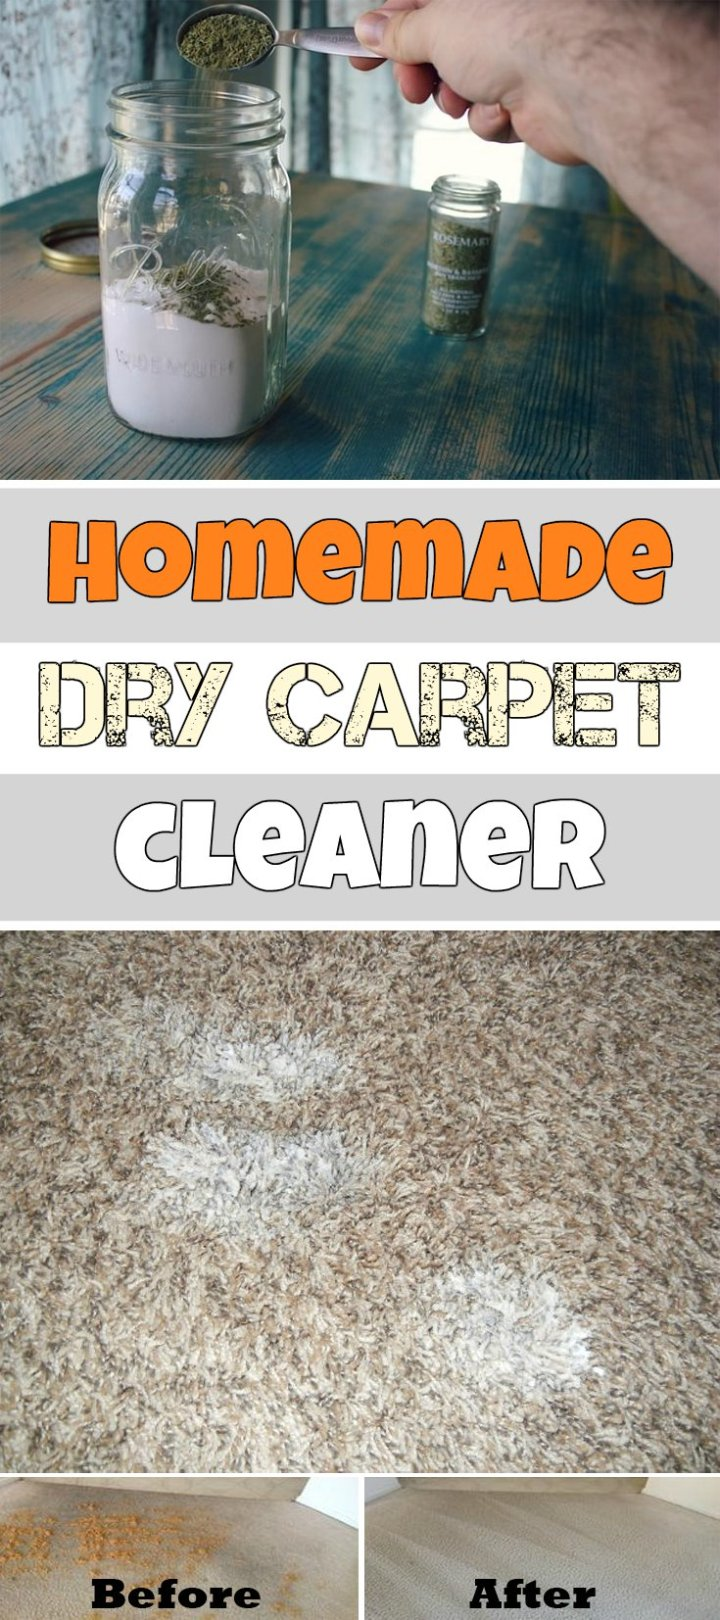 How To Get Rid Of Sugar Ants In Carpet | Carpet Review